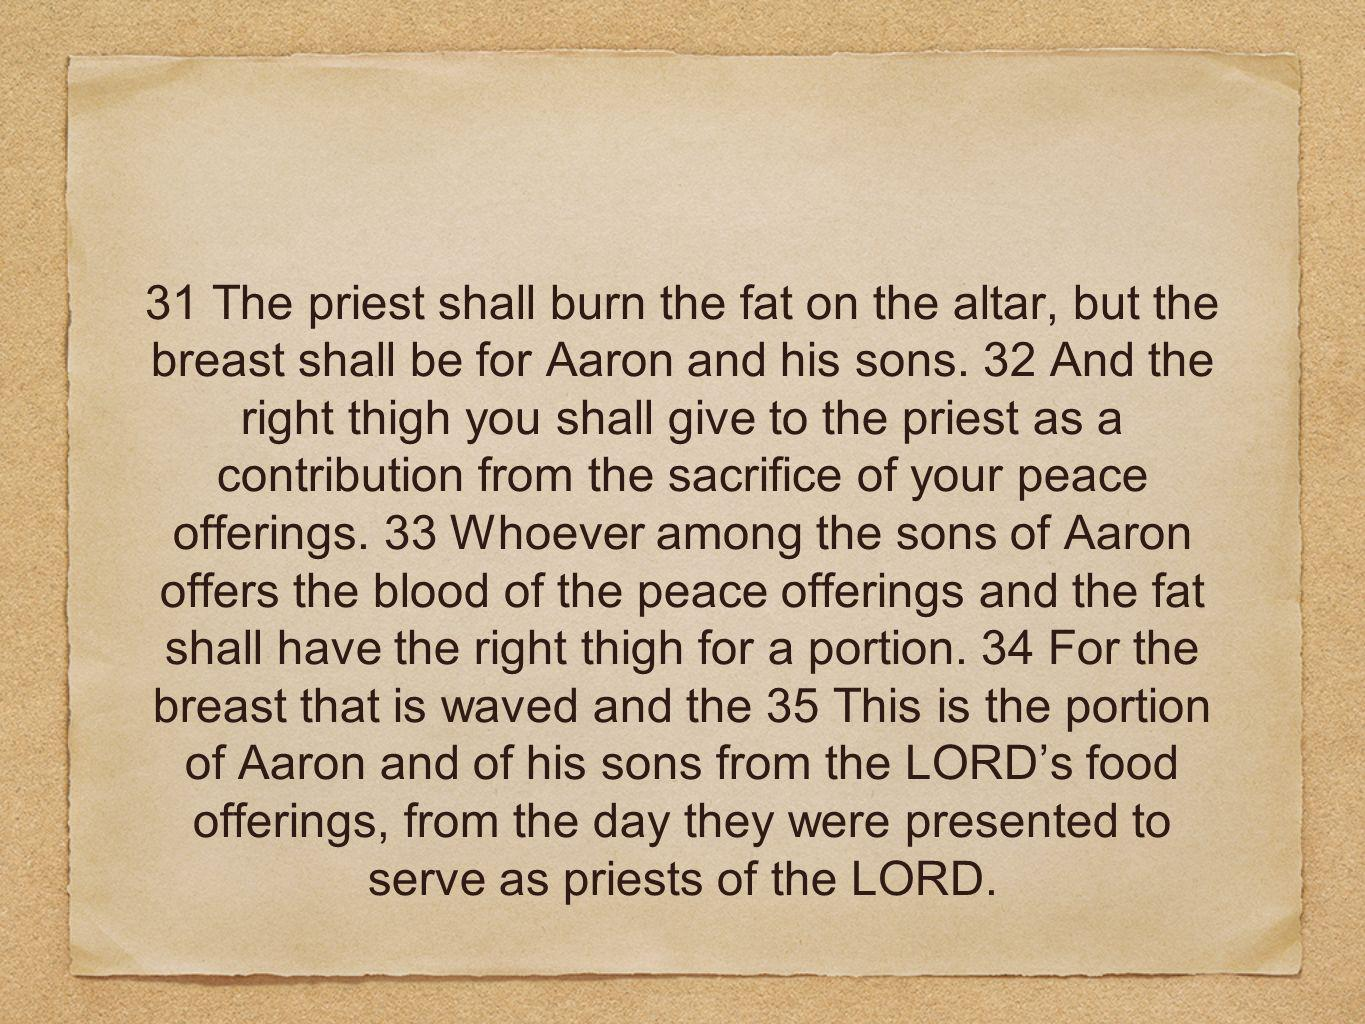 31 The priest shall burn the fat on the altar, but the breast shall be for Aaron and his sons.